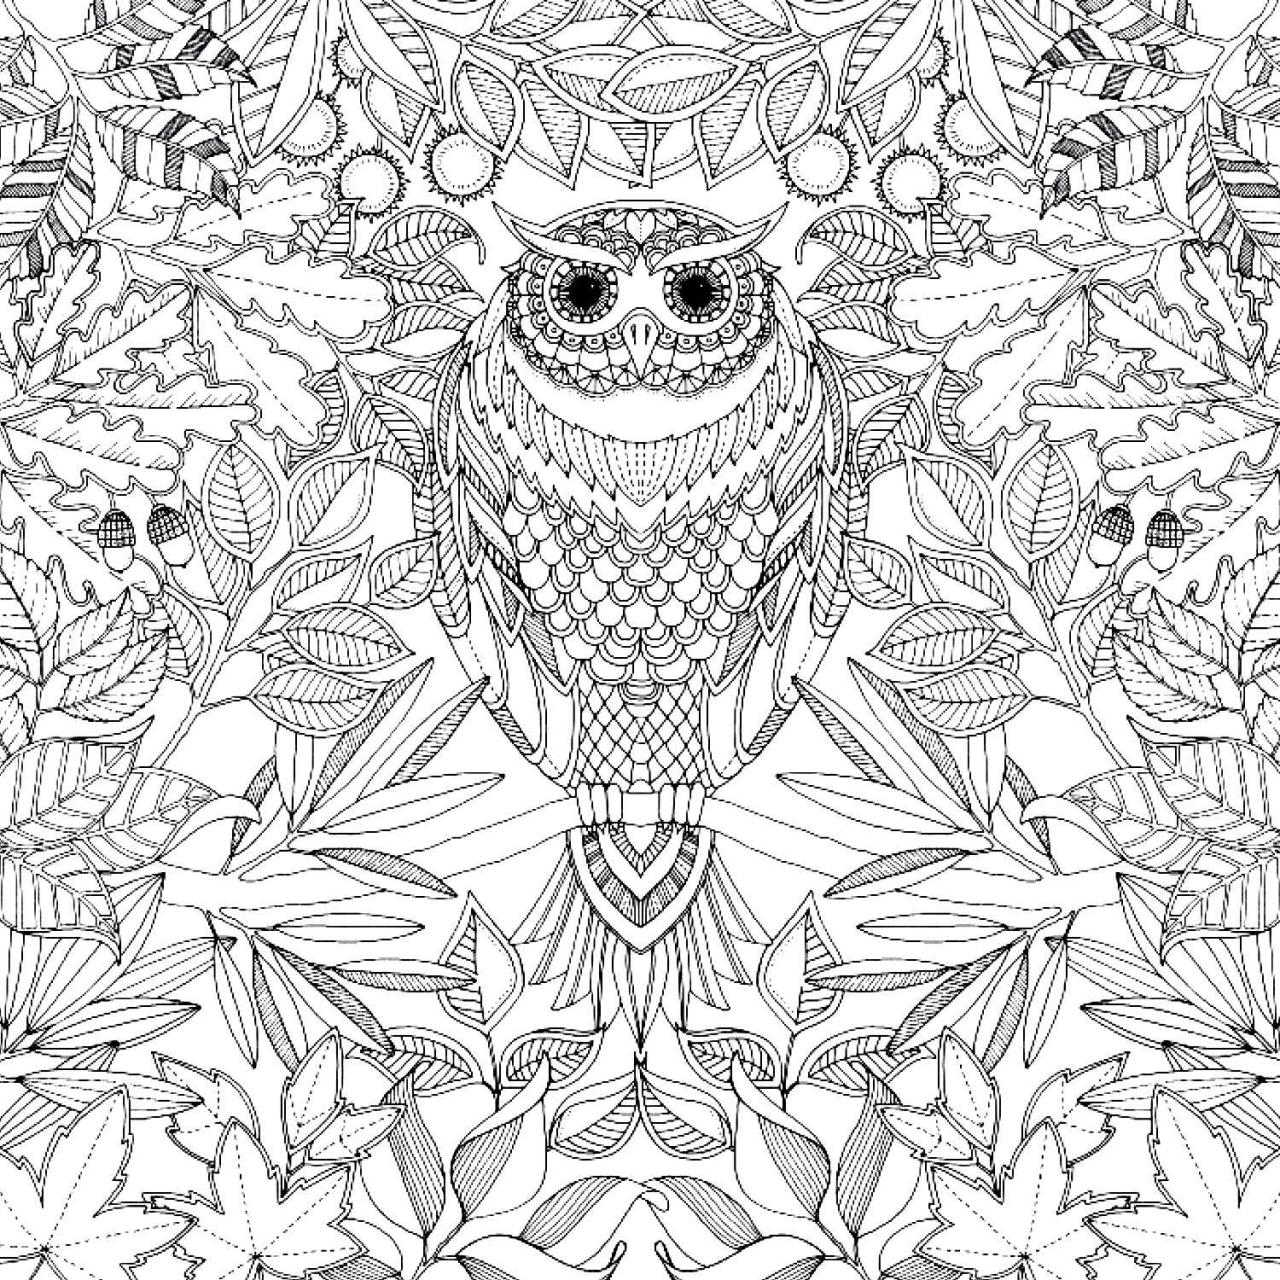 1280x1280 Secret Garden Johanna Basford Coloring Book Coloring Page For Kids